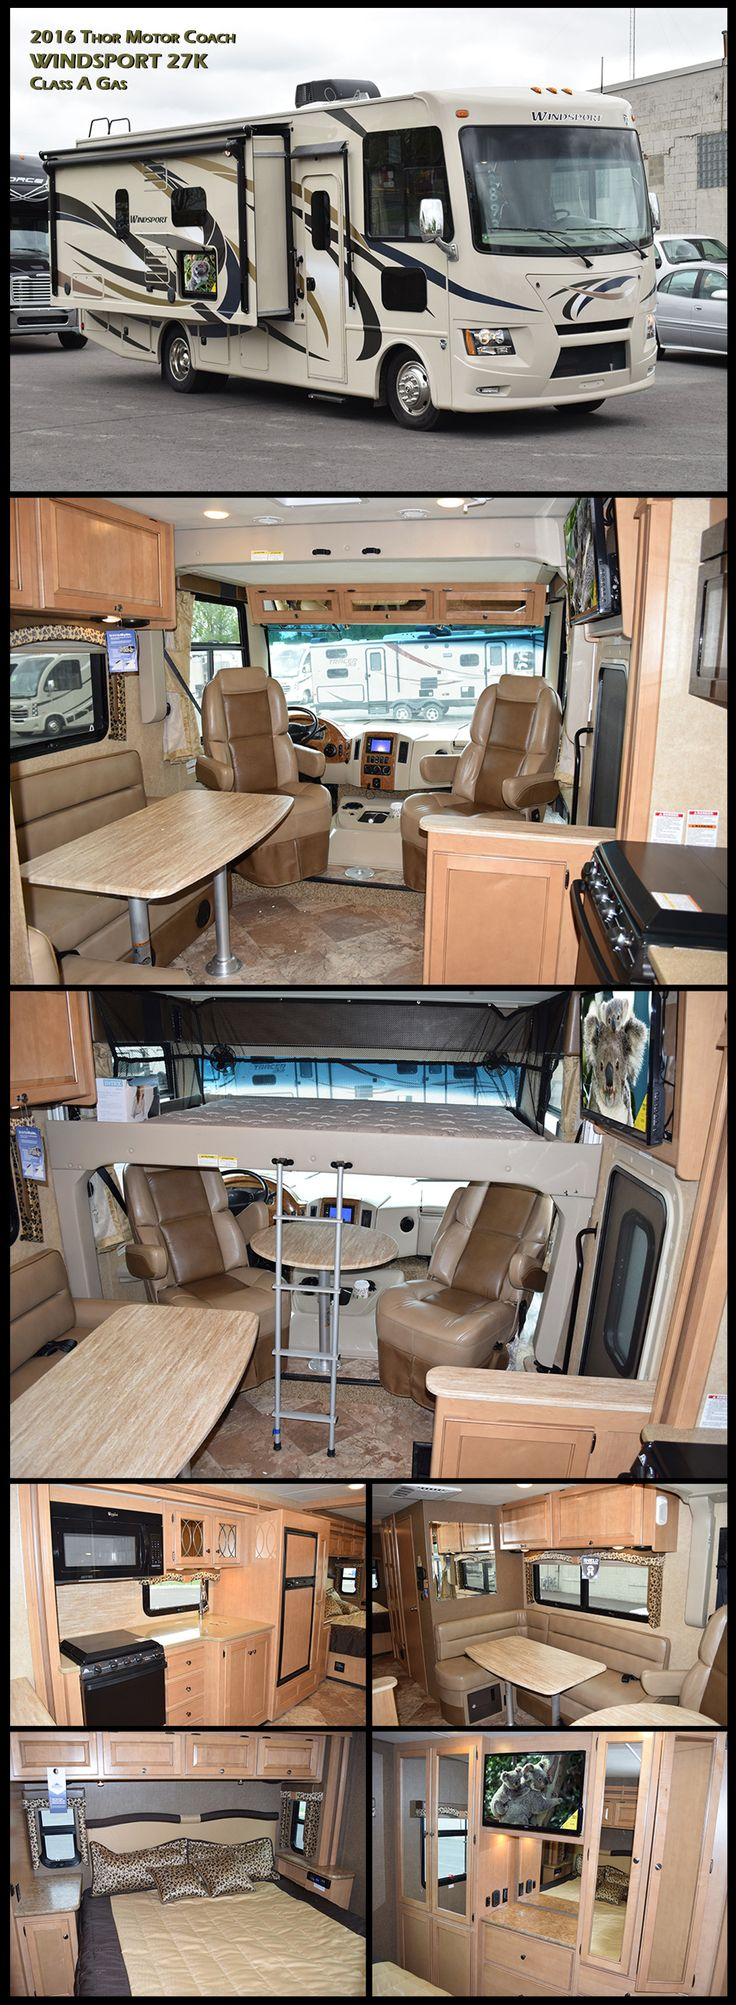 Enjoy the wide angle view from this new 2016 Windsport 27K Class A gas motorhome by Thor Motor Coach. The Windsport has all the features you need in a right sized motorhome. The large slide-out expands the living space to make your stay very comfortable. This 27K model is equipped with a King bed, L Shape lounge, and a power bunk that extends down in the cab area to create a Full size bed.